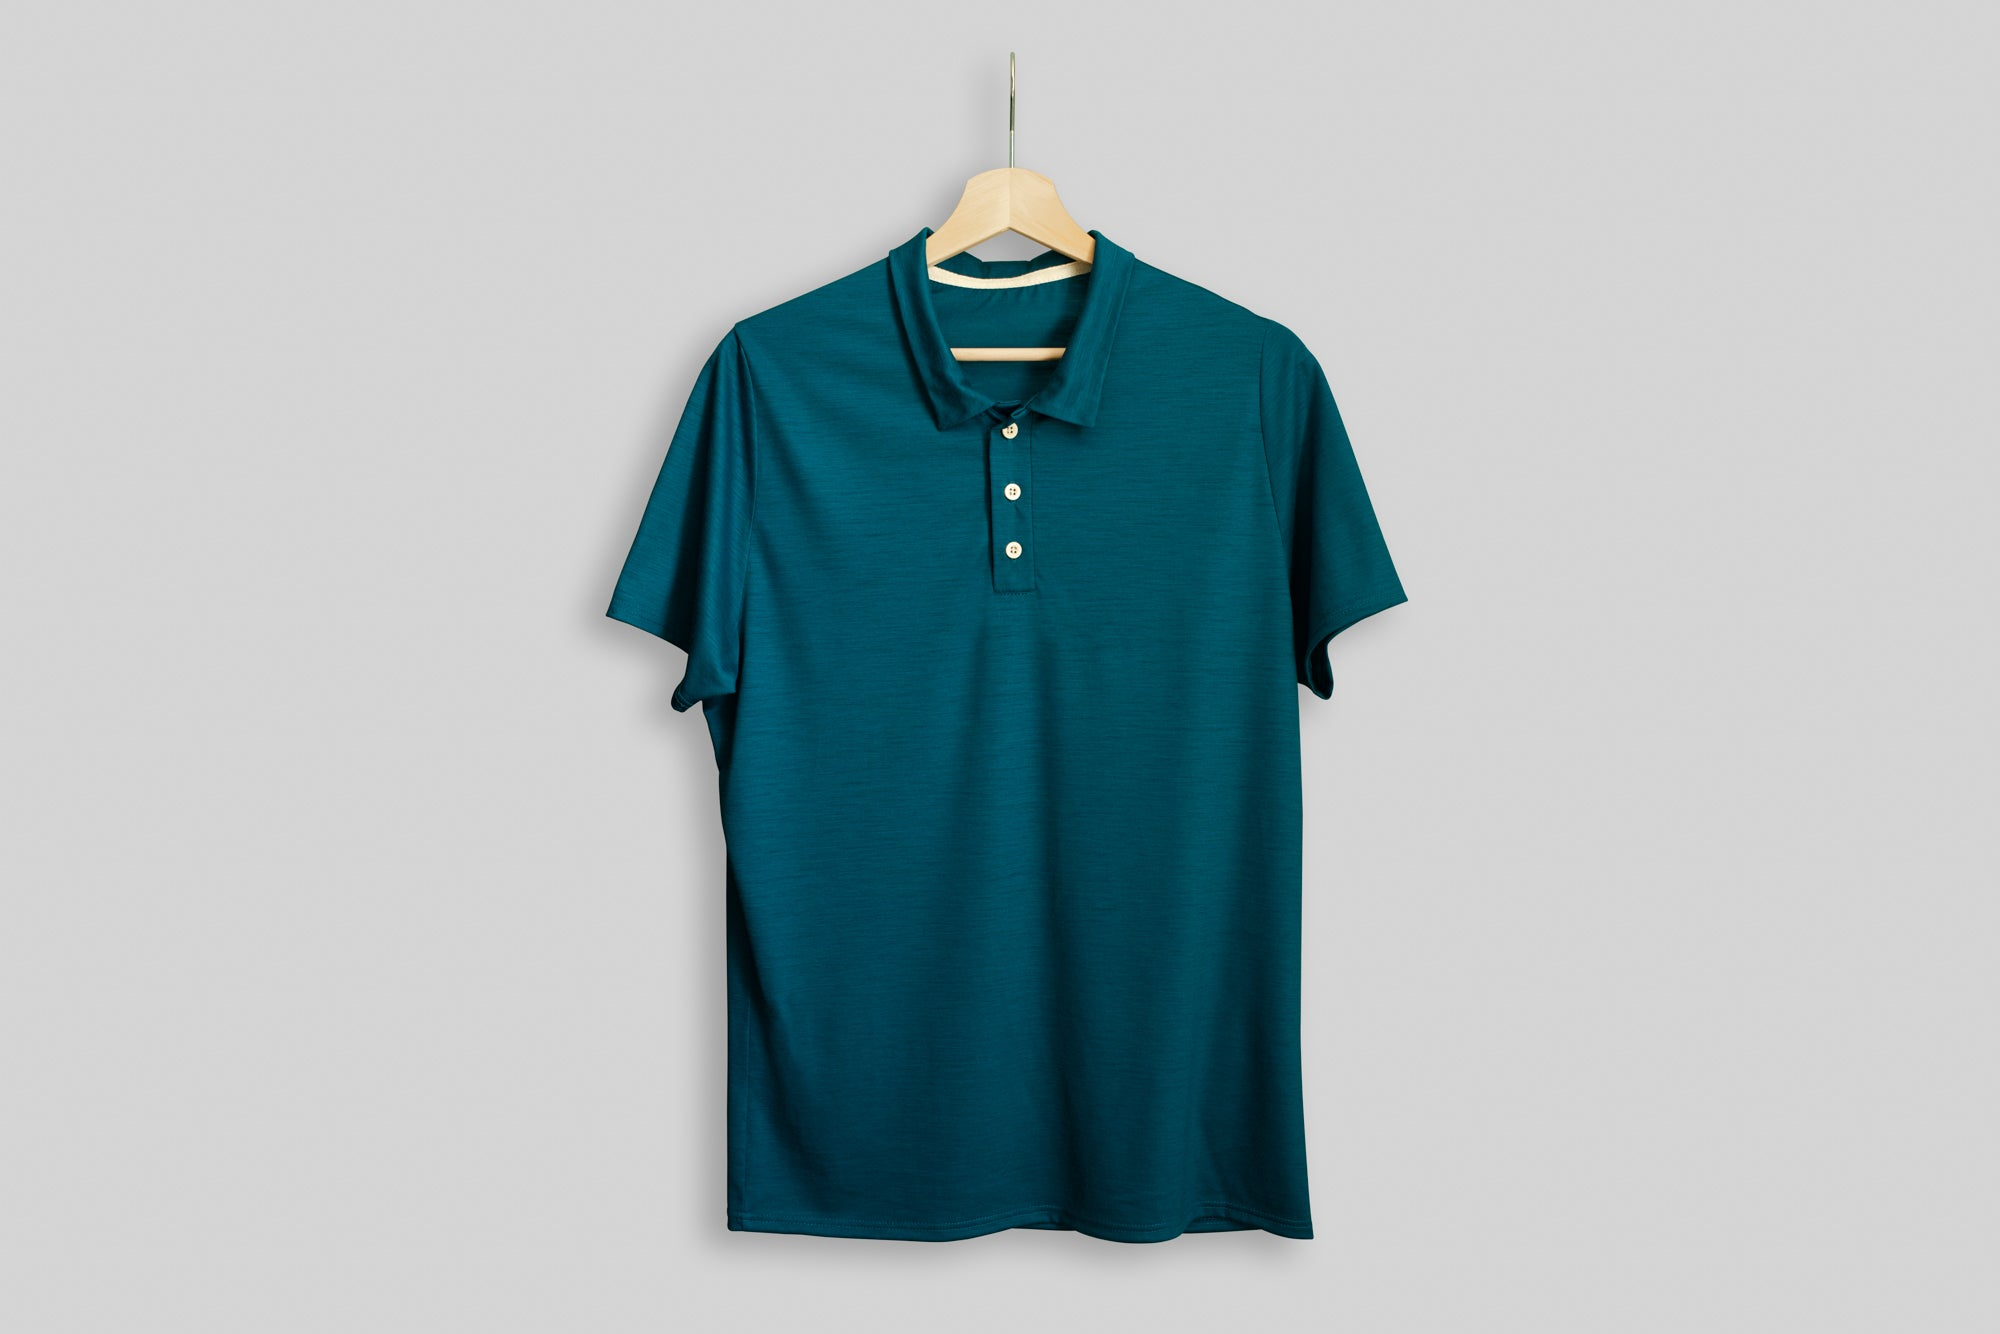 Dragonfly Signature Merino Golf Polo Shirt displayed on a hanger